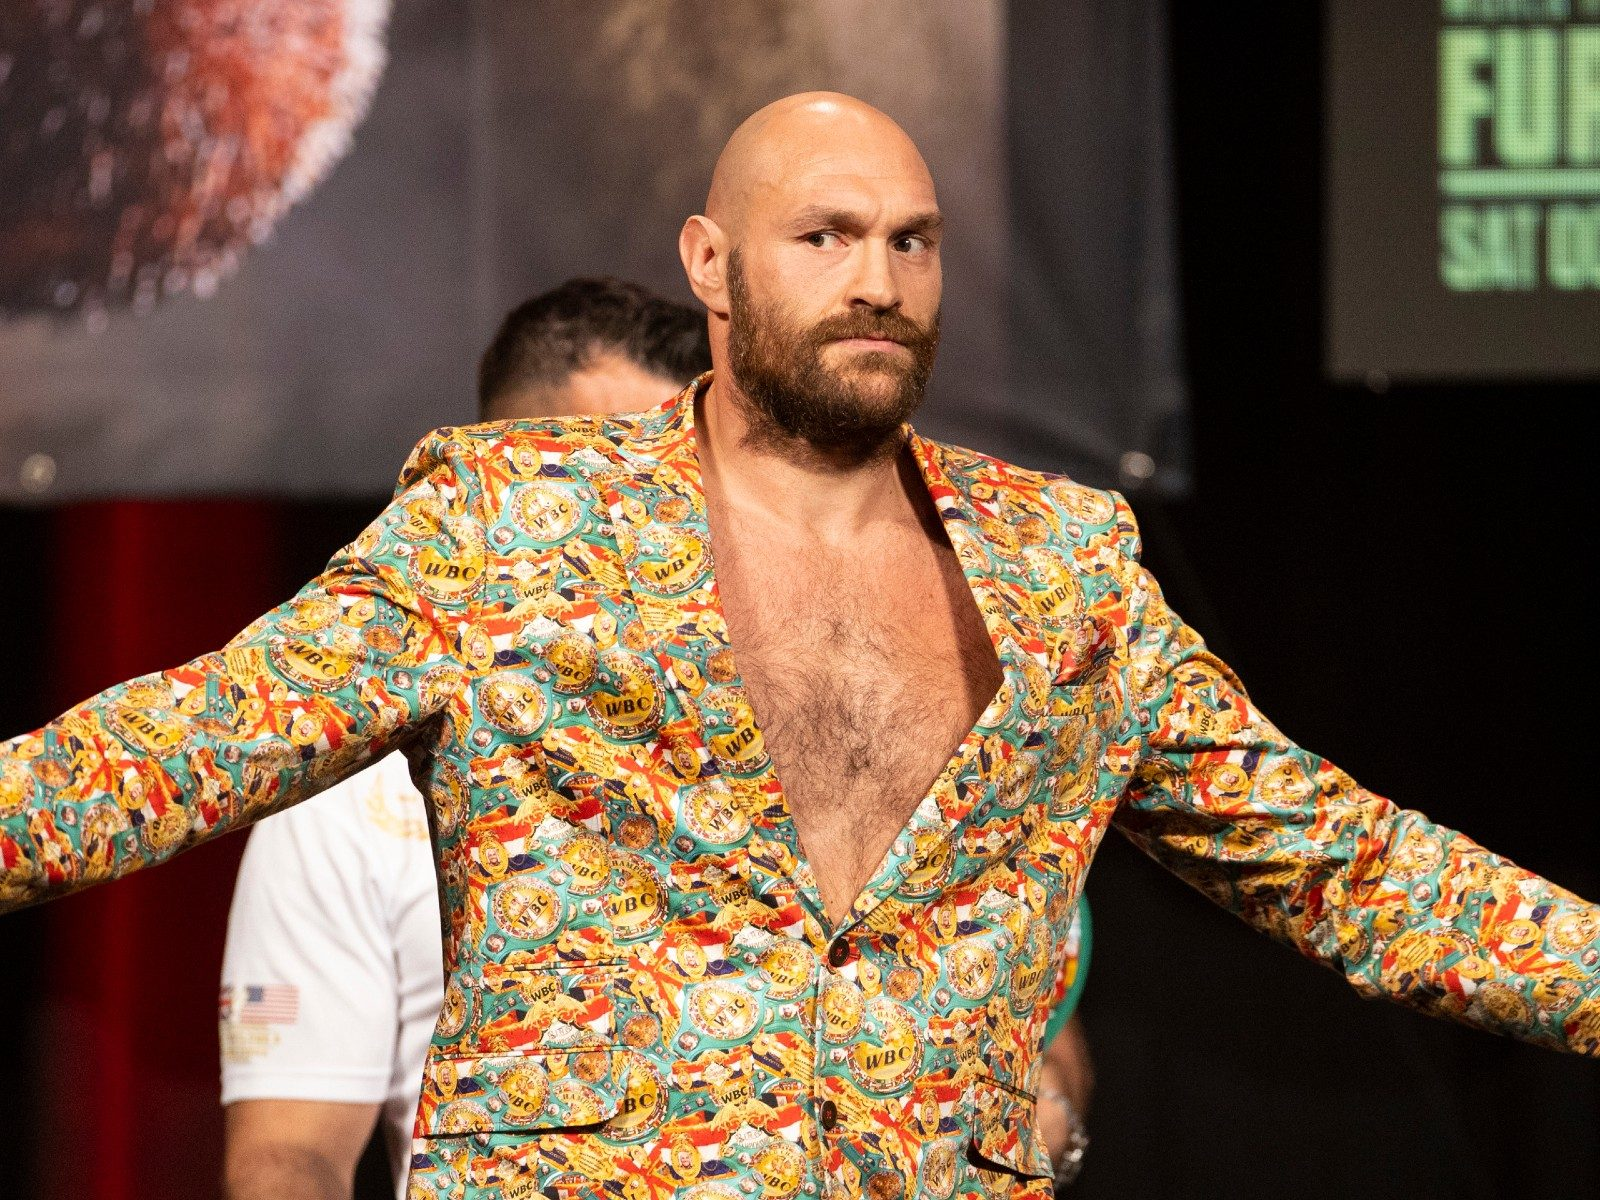 Did Tyson Fury Cheat? Deontay WilderCheating Accusations On Fury